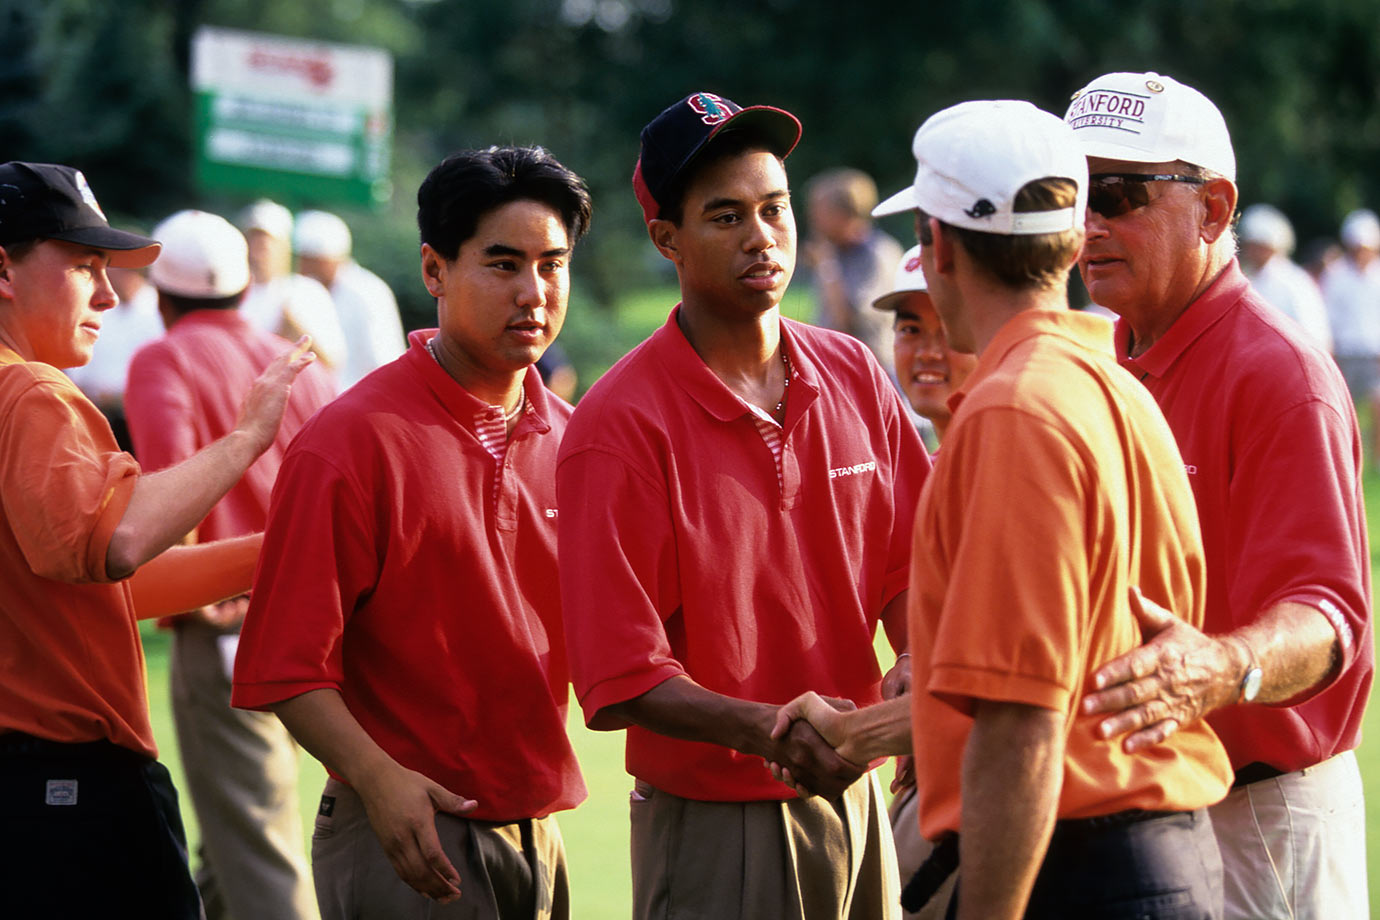 June 2, 1995 — NCAA Men's Golf Championships